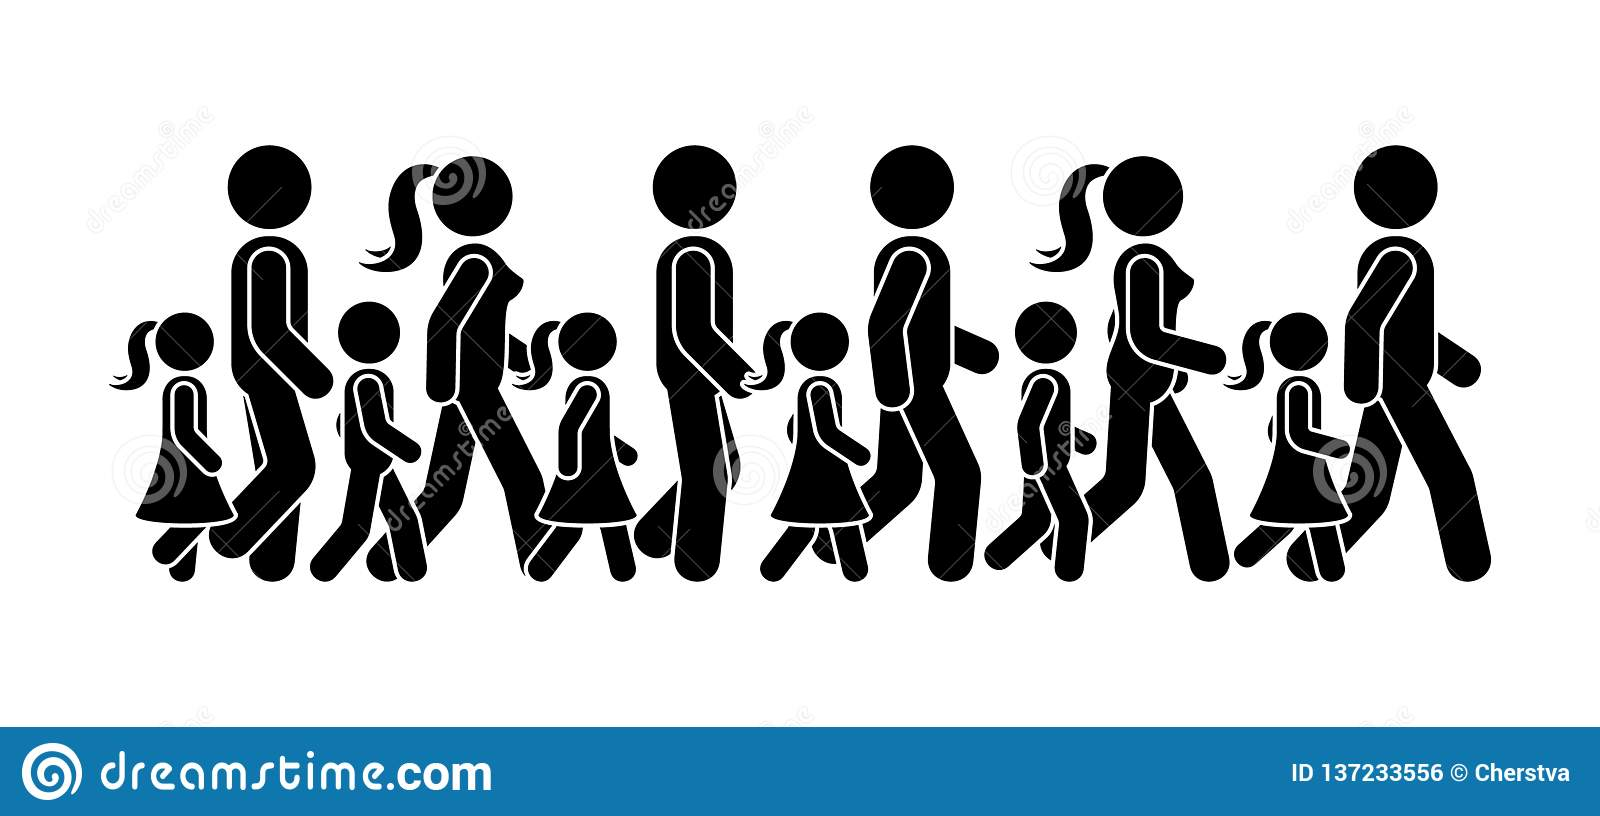 Stick figure walking group of people vector icon pictogram. Man, woman and children moving forward sequence set.